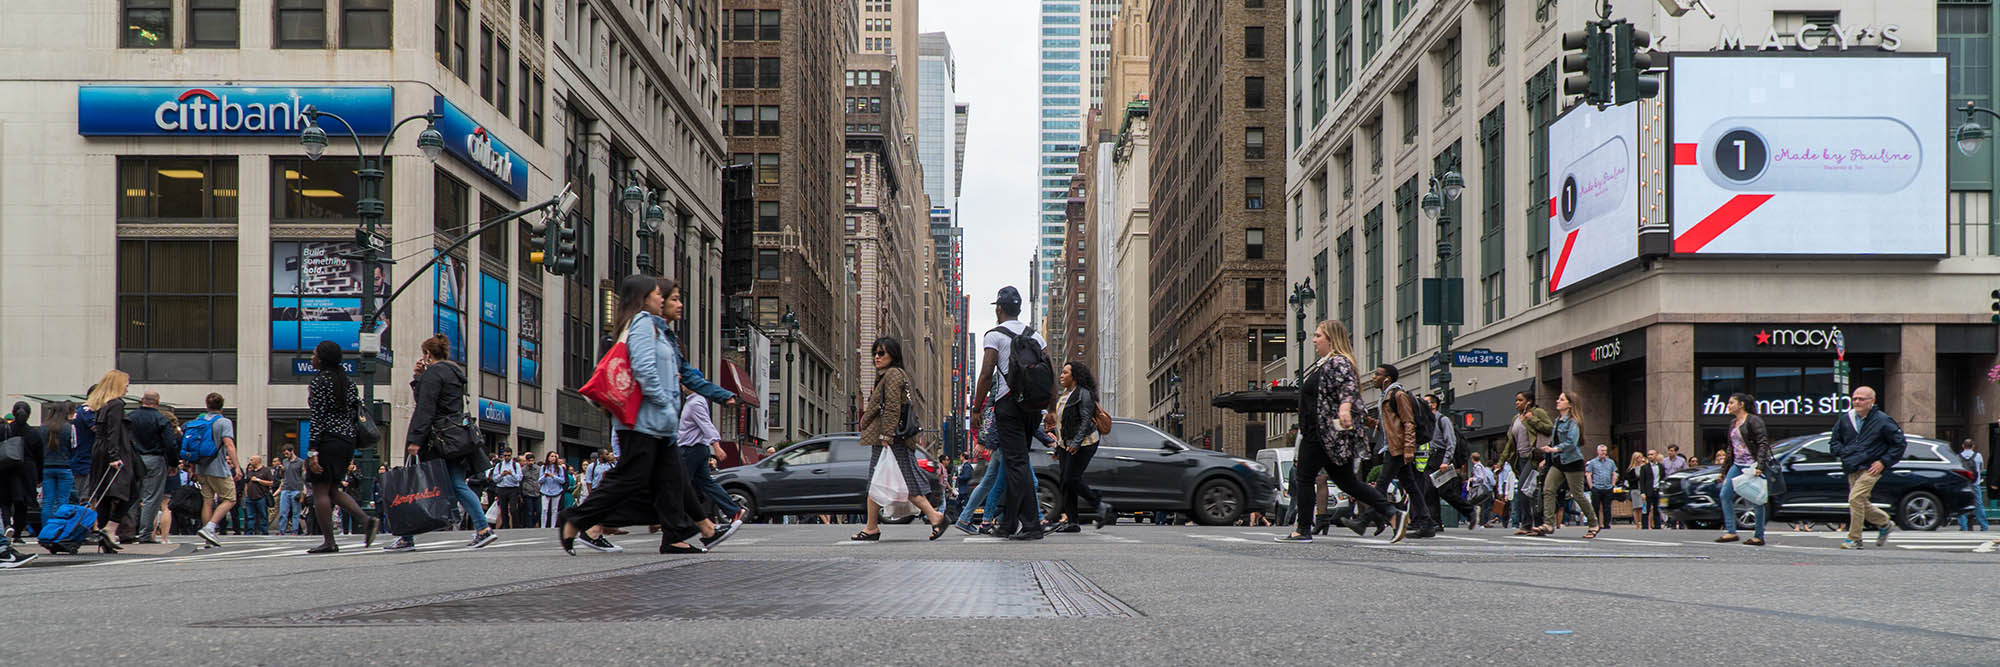 low angle city panorama cross walk road tarmac walking crowded street photography portrait city people camera subject light how to tutorial guide